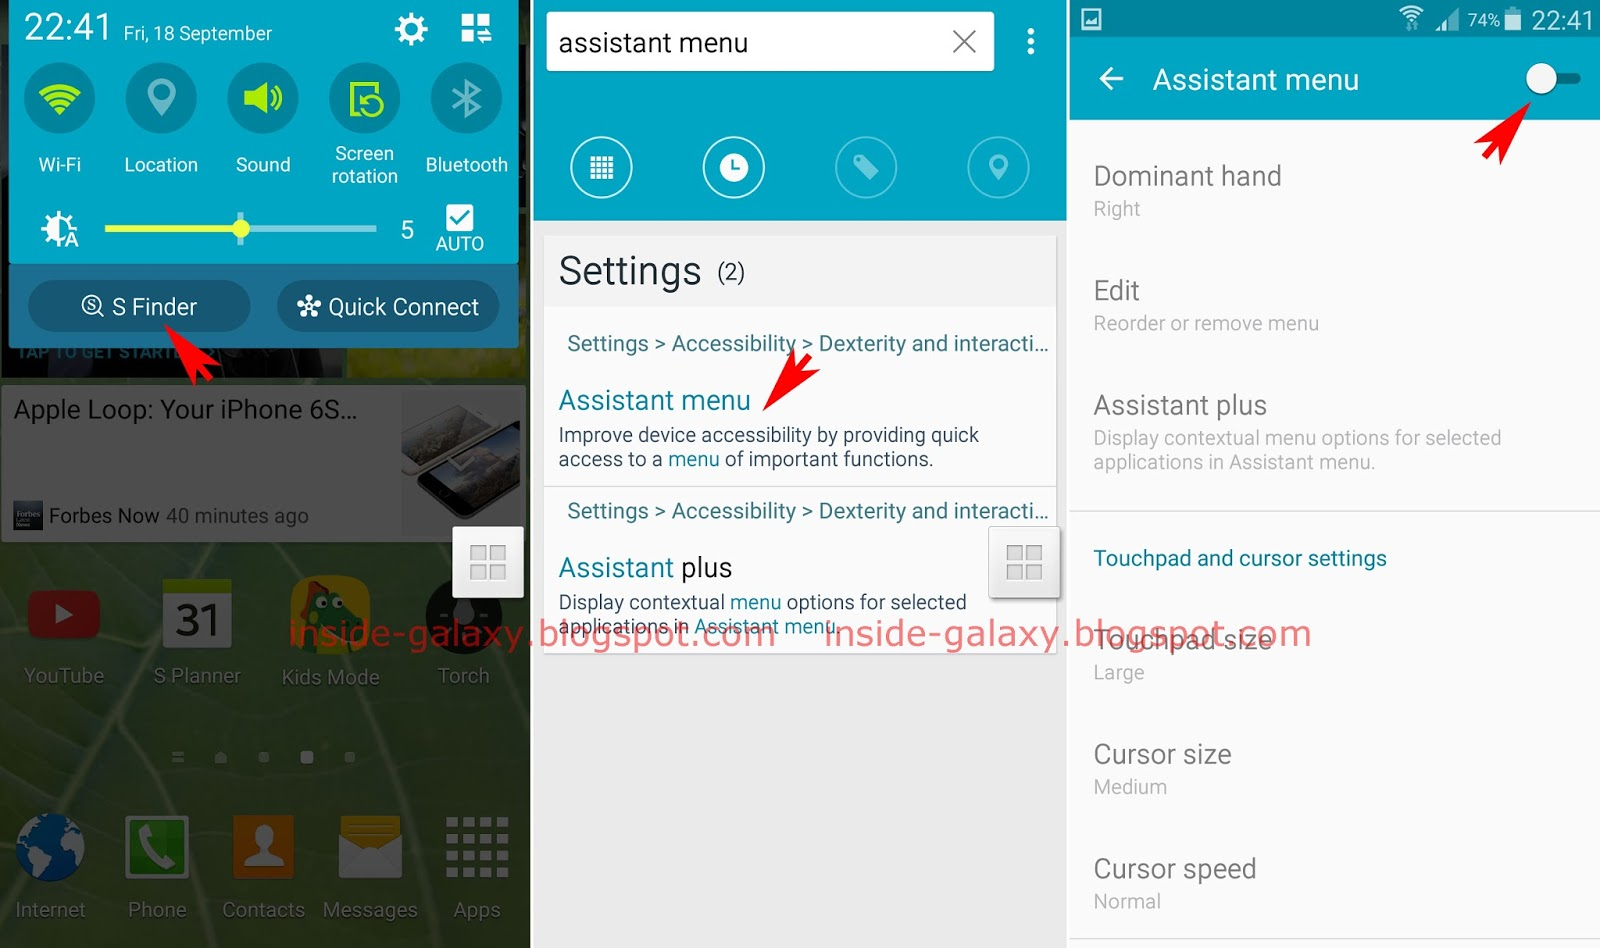 Samsung Galaxy S5: How to Disable Assistant Menu Feature ...